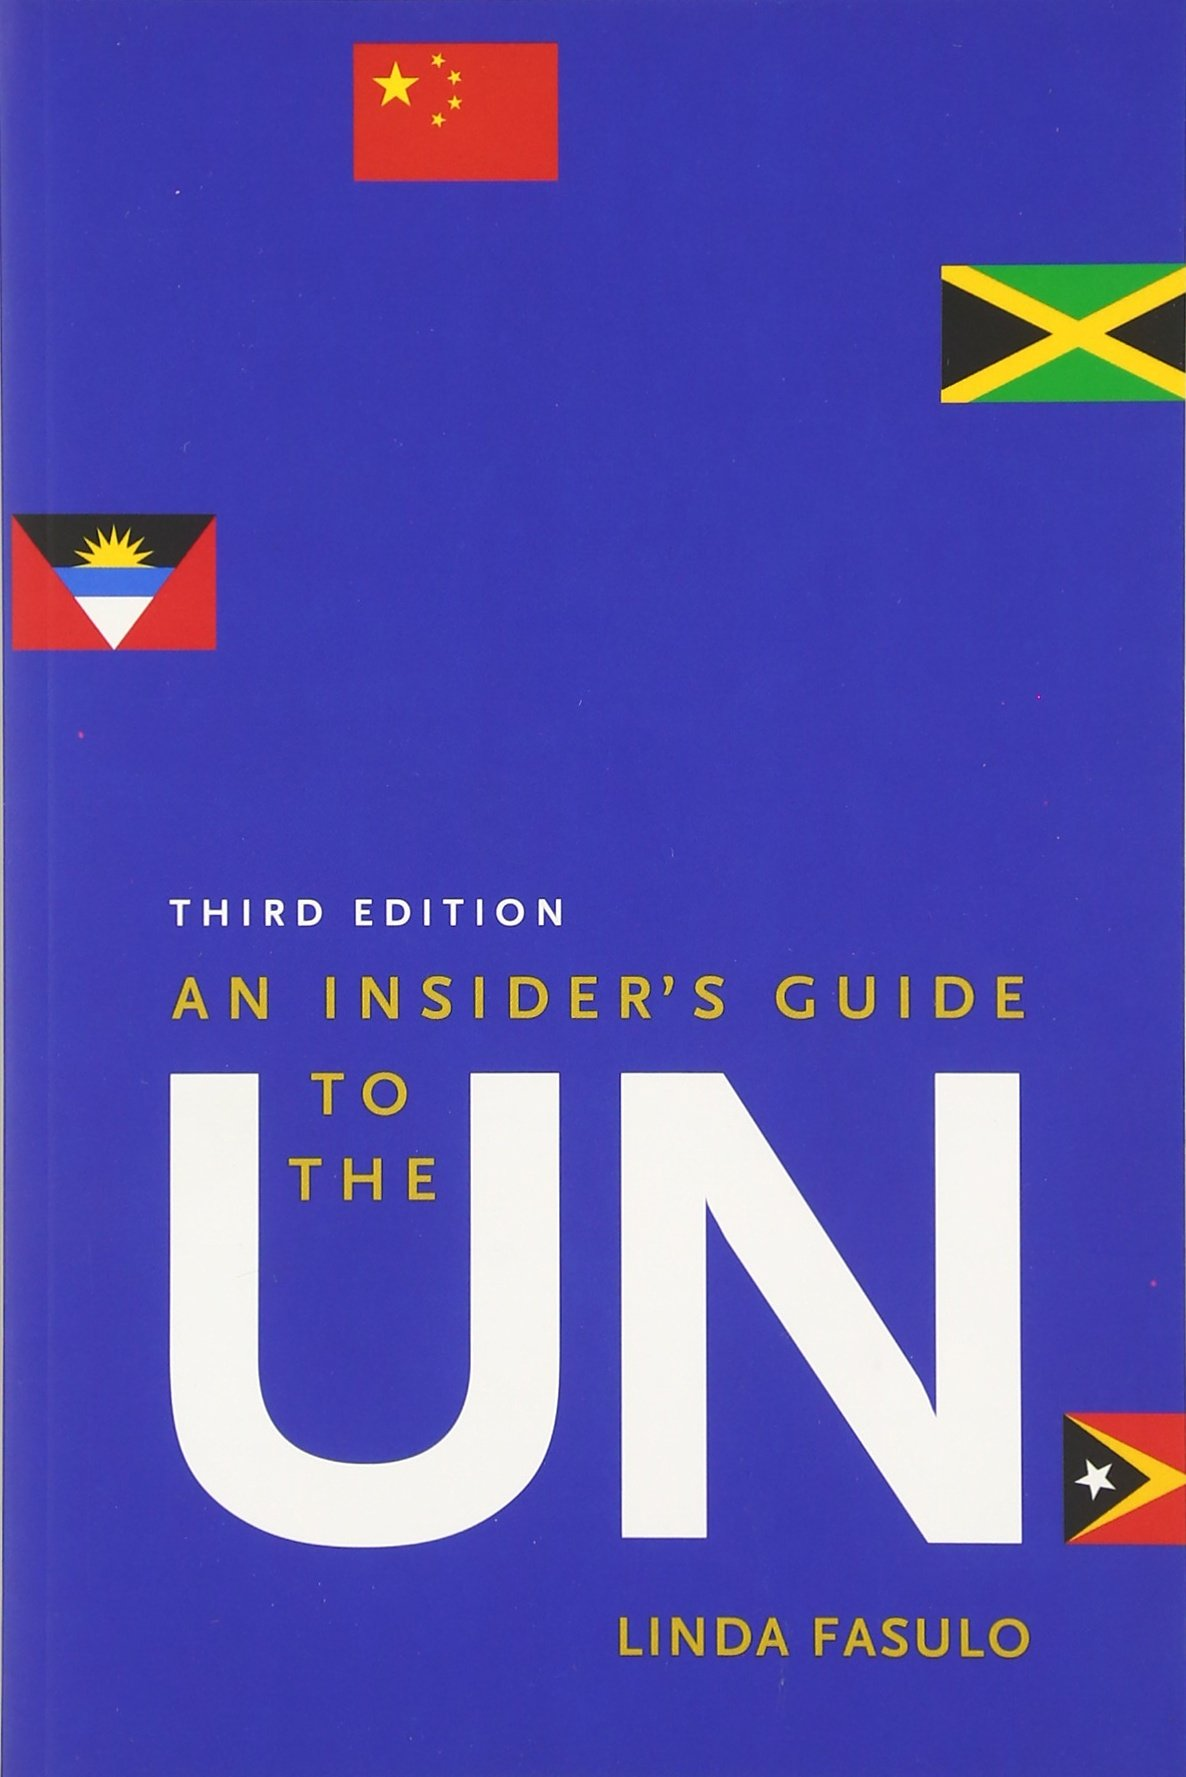 Book Cover - royal blue background featuring a handful of international flags; the letters UN are in bold white on the cover